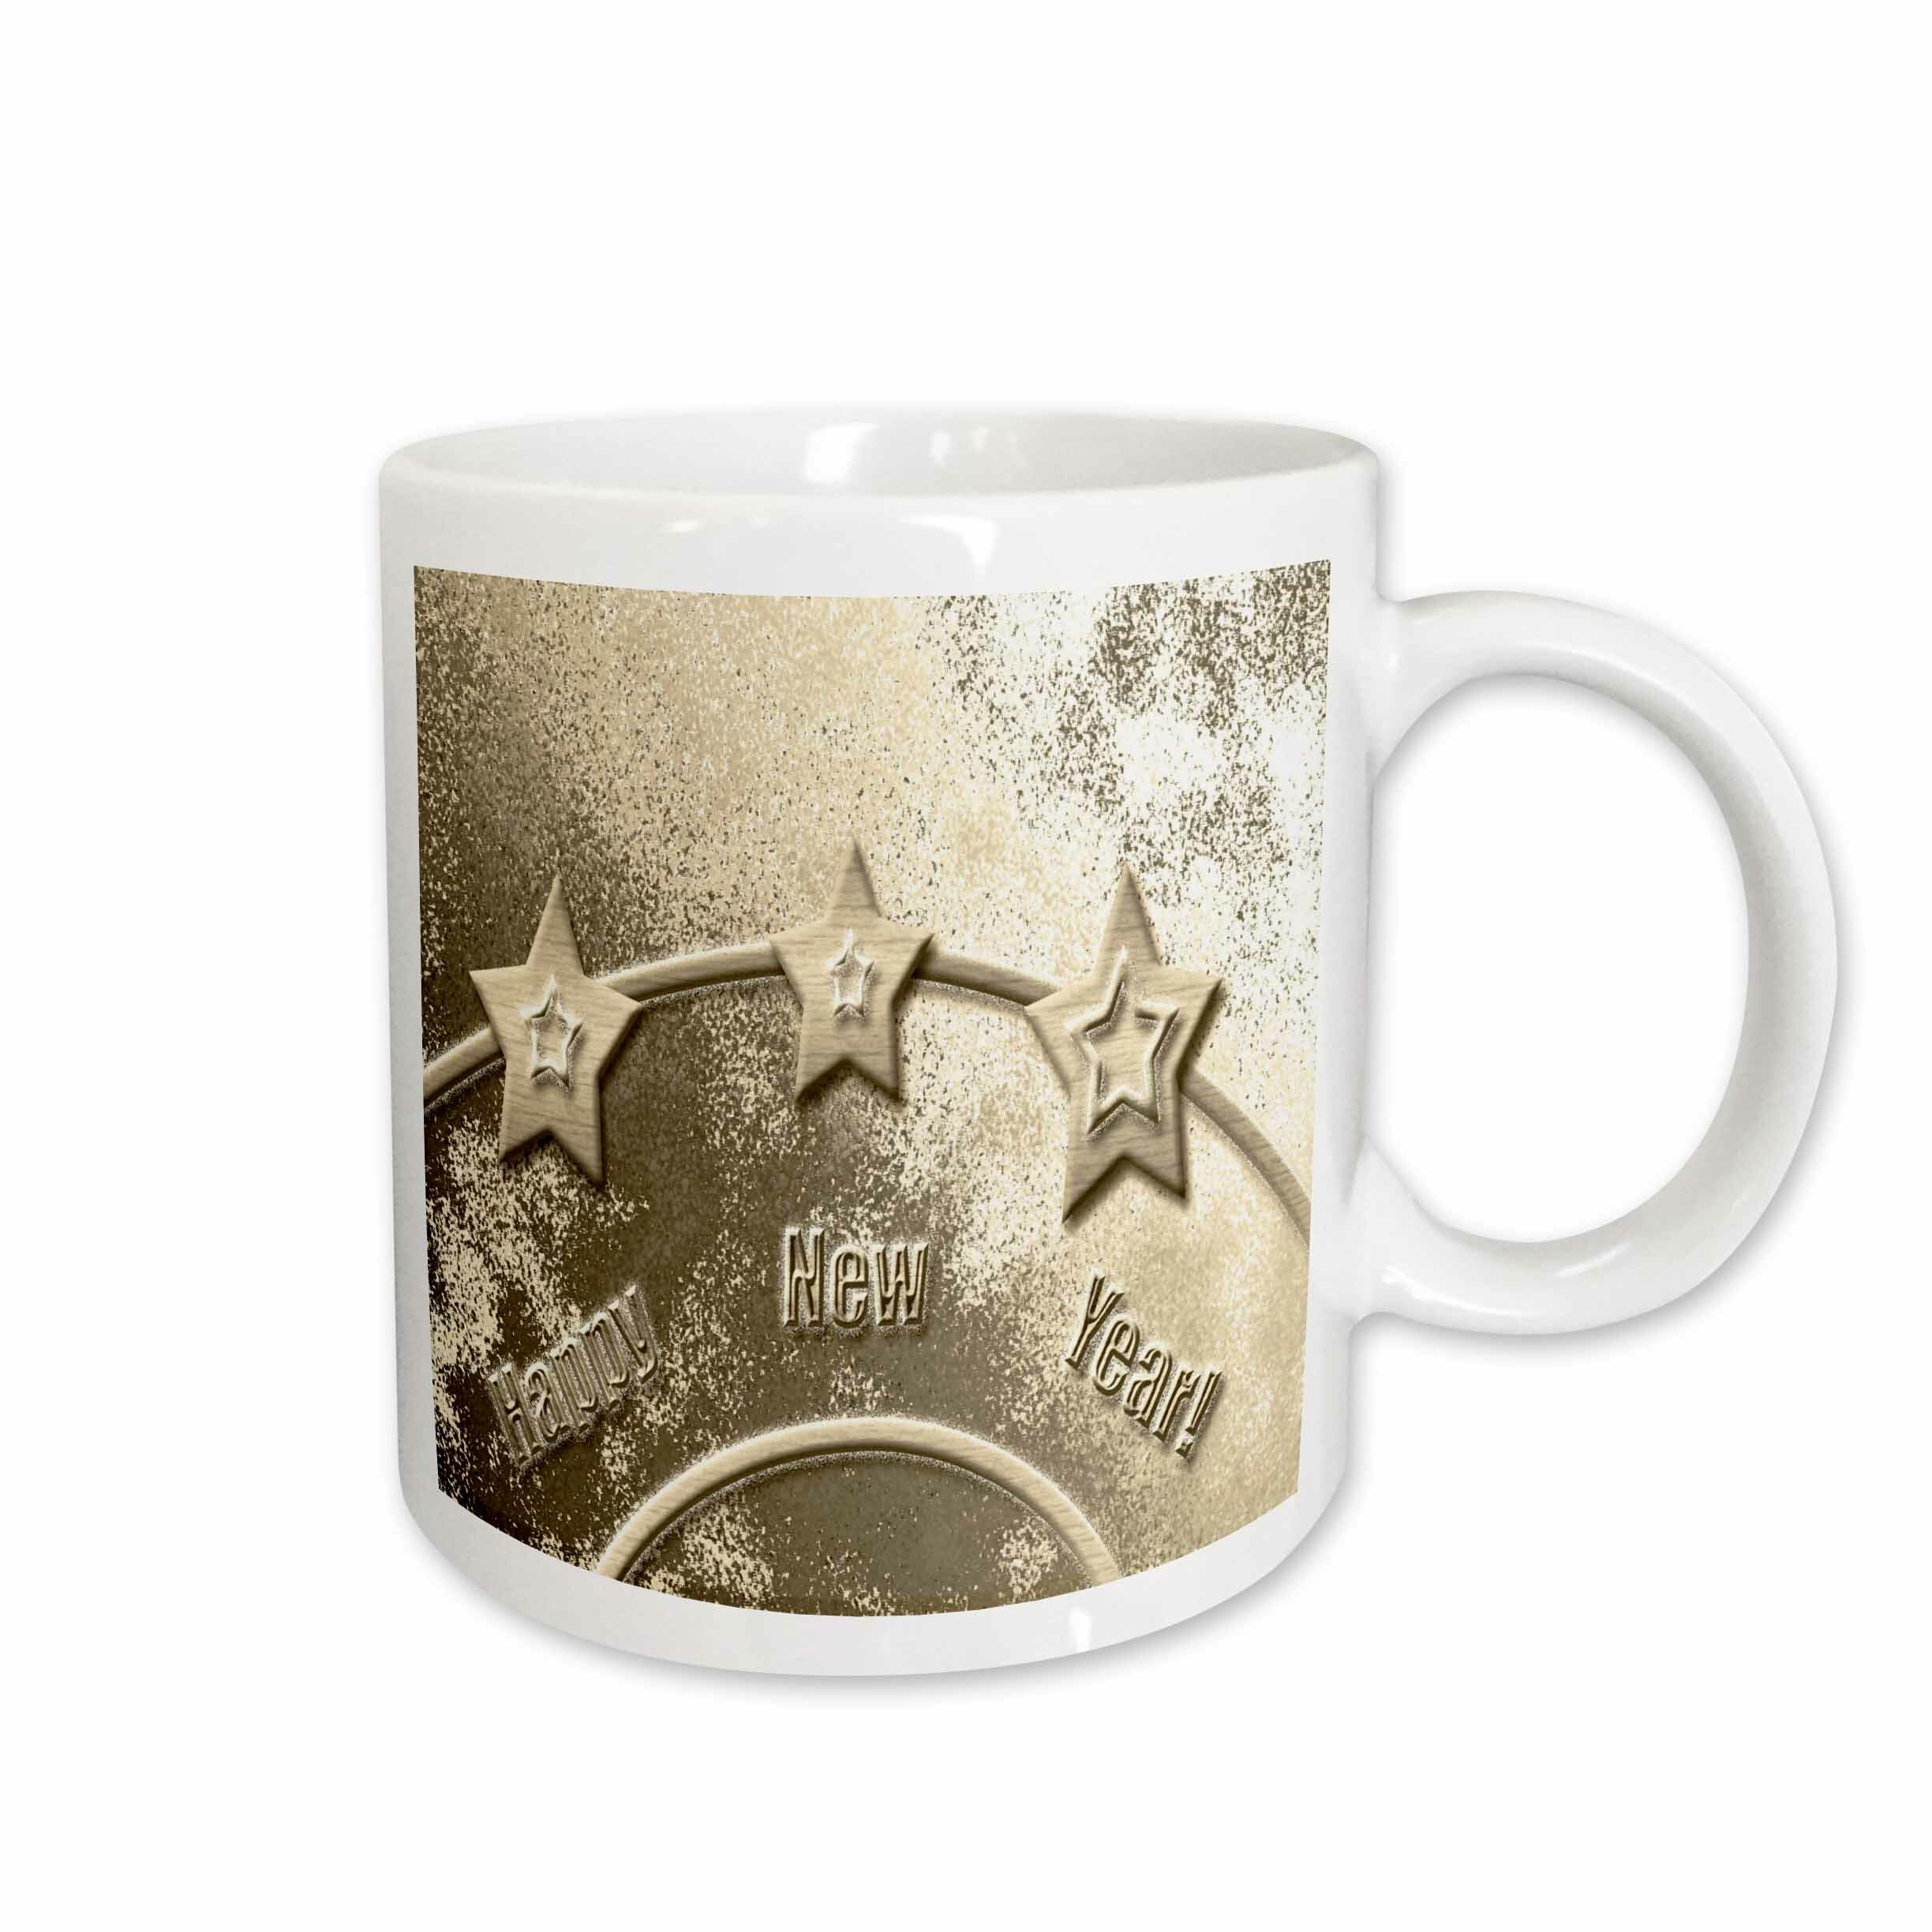 3drose Three Stars On Happy New Year Coffee Mug Wayfair